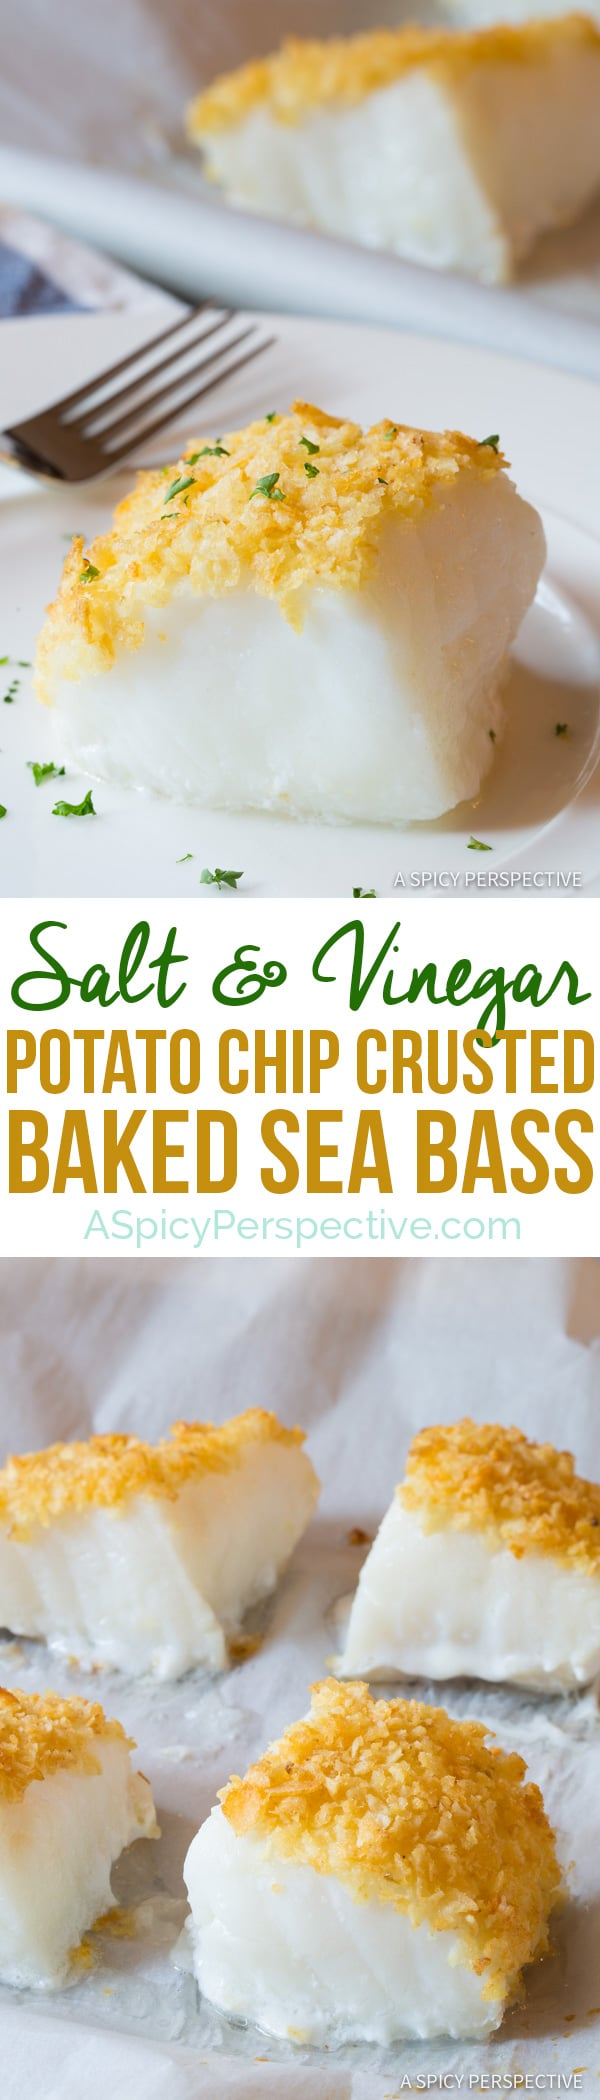 3-Ingredient Salt and Vinegar Potato Chip Crusted Baked Sea Bass Recipe (Healthy Fish and Chips!) | ASpicyPerspective.com